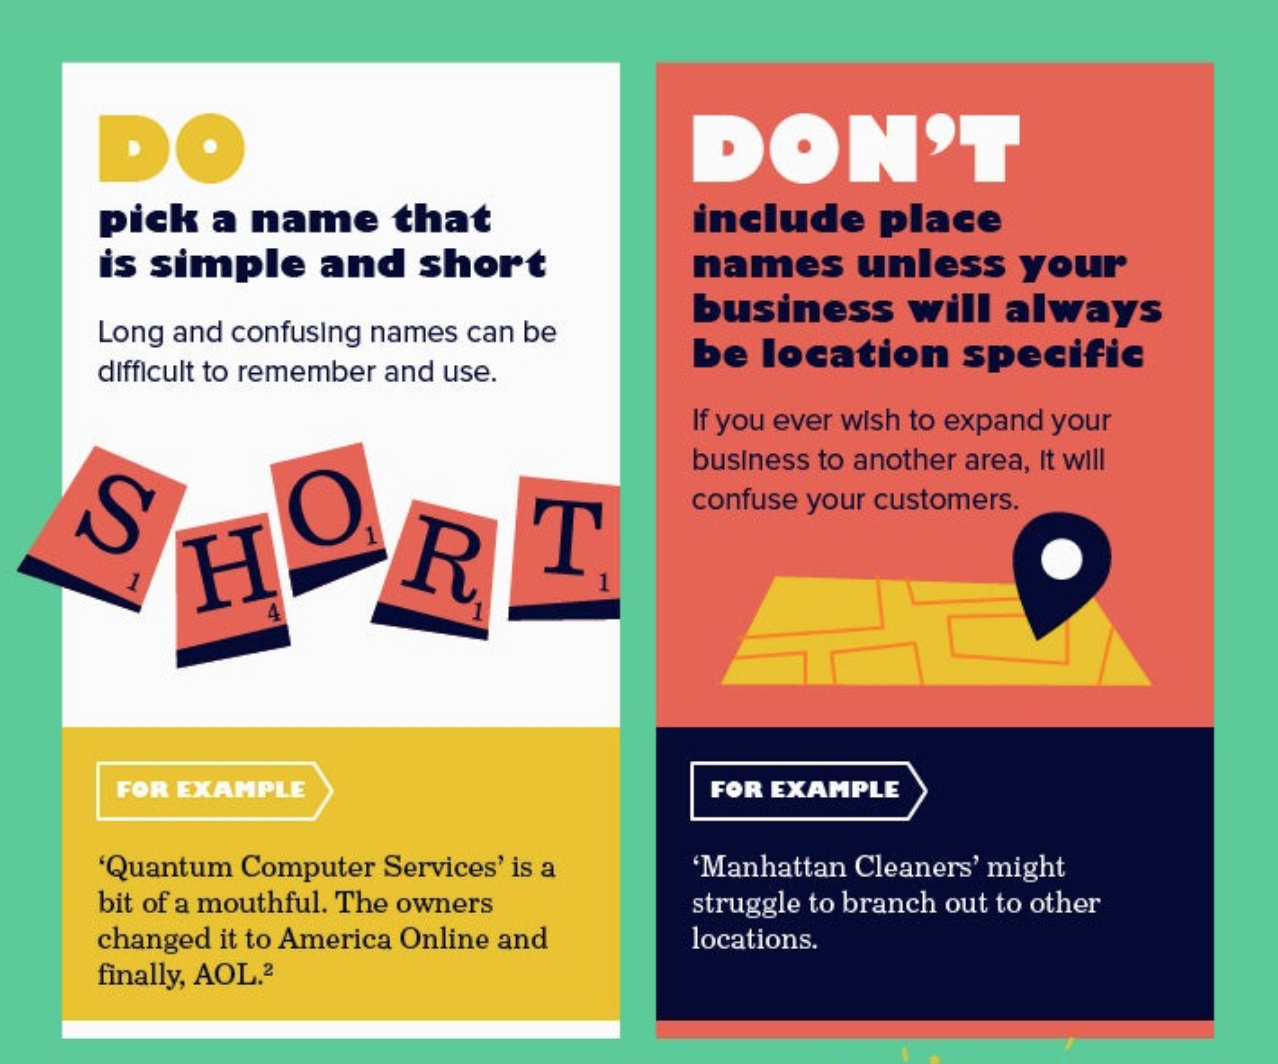 Do's and don'ts for picking a name.